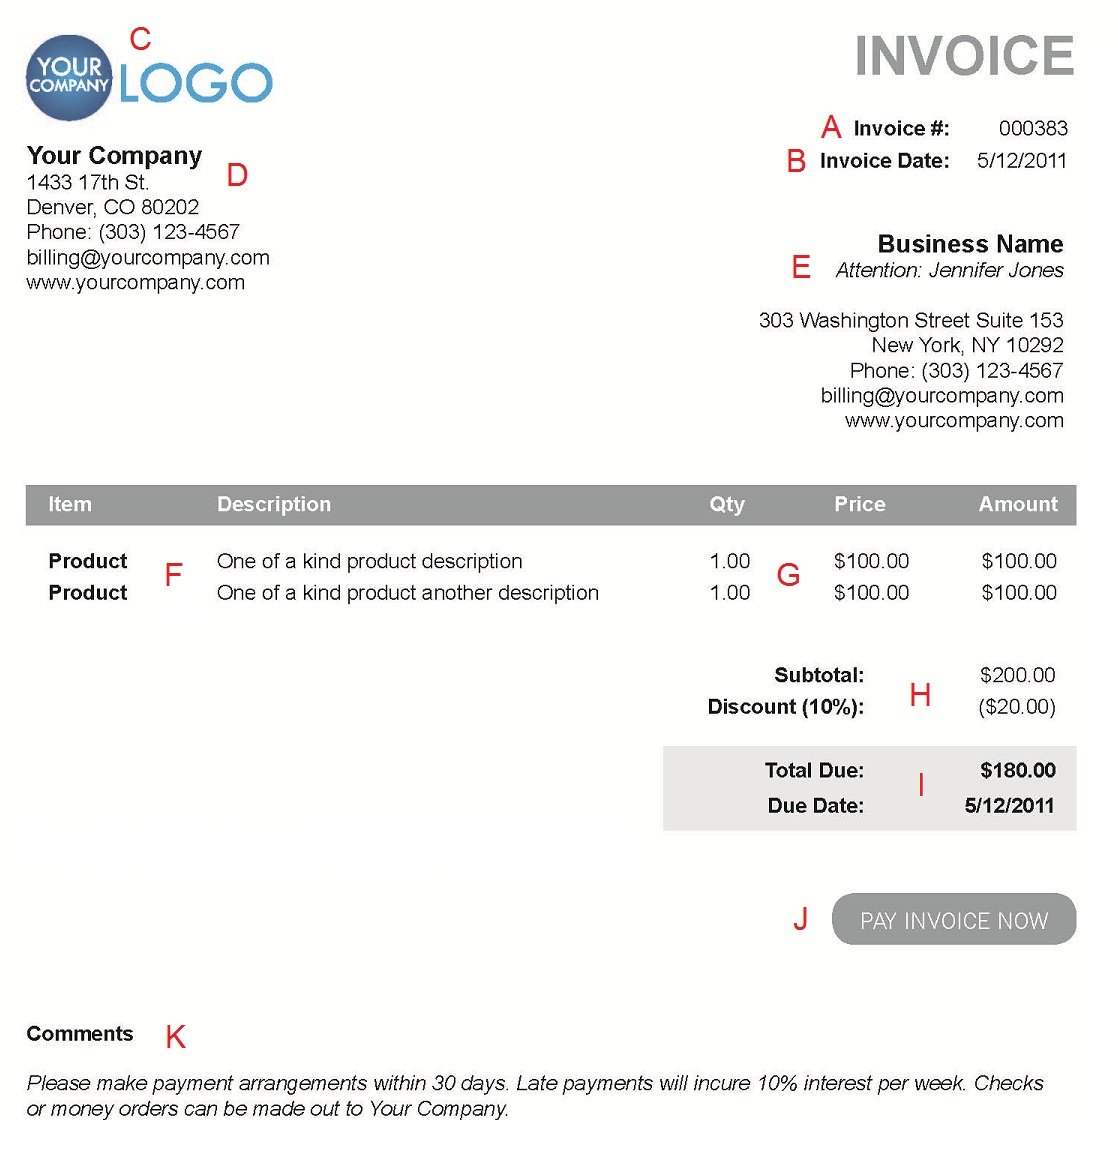 Centralasianshepherdus  Terrific The  Different Sections Of An Electronic Payment Invoice With Extraordinary A  With Agreeable Definition Of Invoice Price Also Invoice Paid In Full In Addition Acura Mdx Invoice Price And Invoicing Terms As Well As Vendor Invoice Template Additionally Freshbooks Invoicing From Paysimplecom With Centralasianshepherdus  Extraordinary The  Different Sections Of An Electronic Payment Invoice With Agreeable A  And Terrific Definition Of Invoice Price Also Invoice Paid In Full In Addition Acura Mdx Invoice Price From Paysimplecom